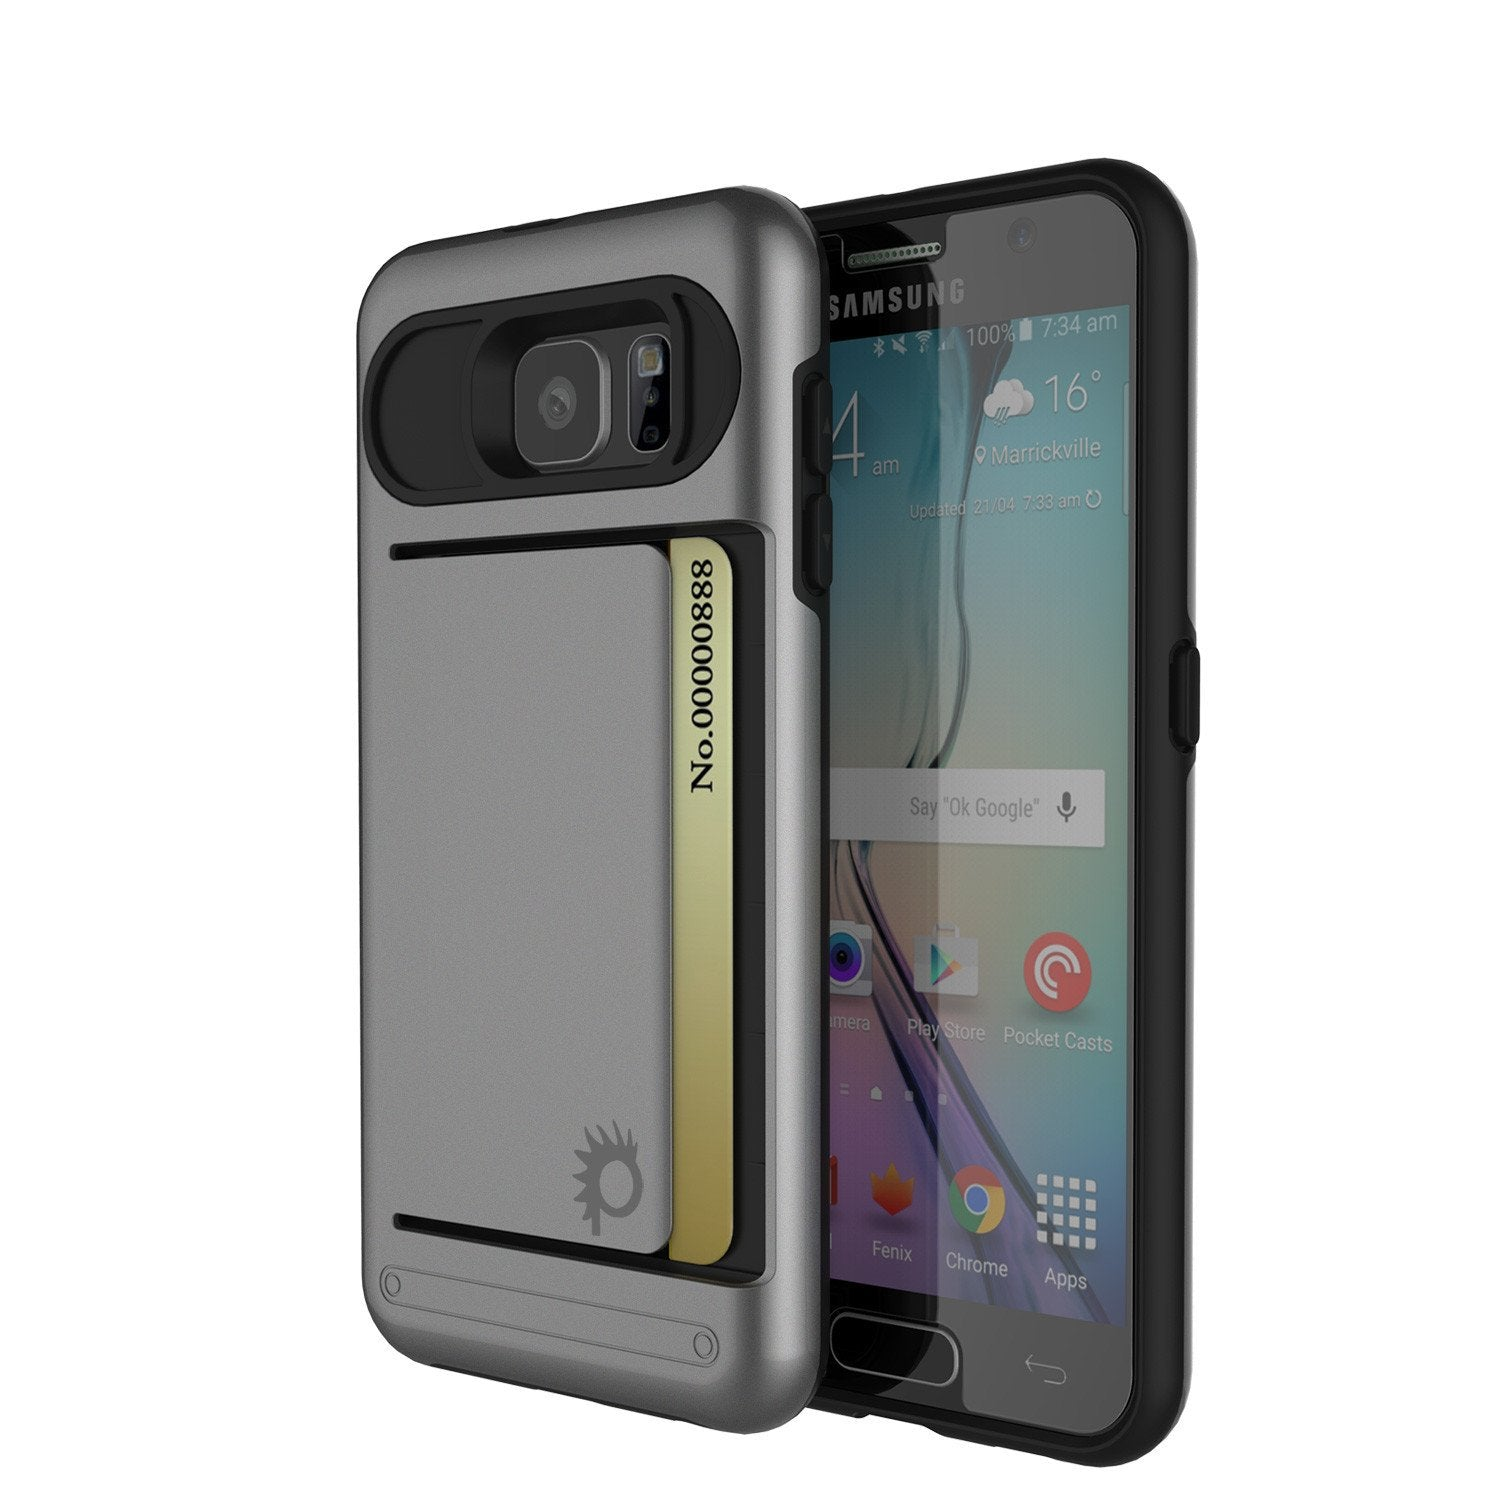 Galaxy S6 EDGE Case PunkCase CLUTCH Grey Series Slim Armor Soft Cover Case w/ Screen Protector